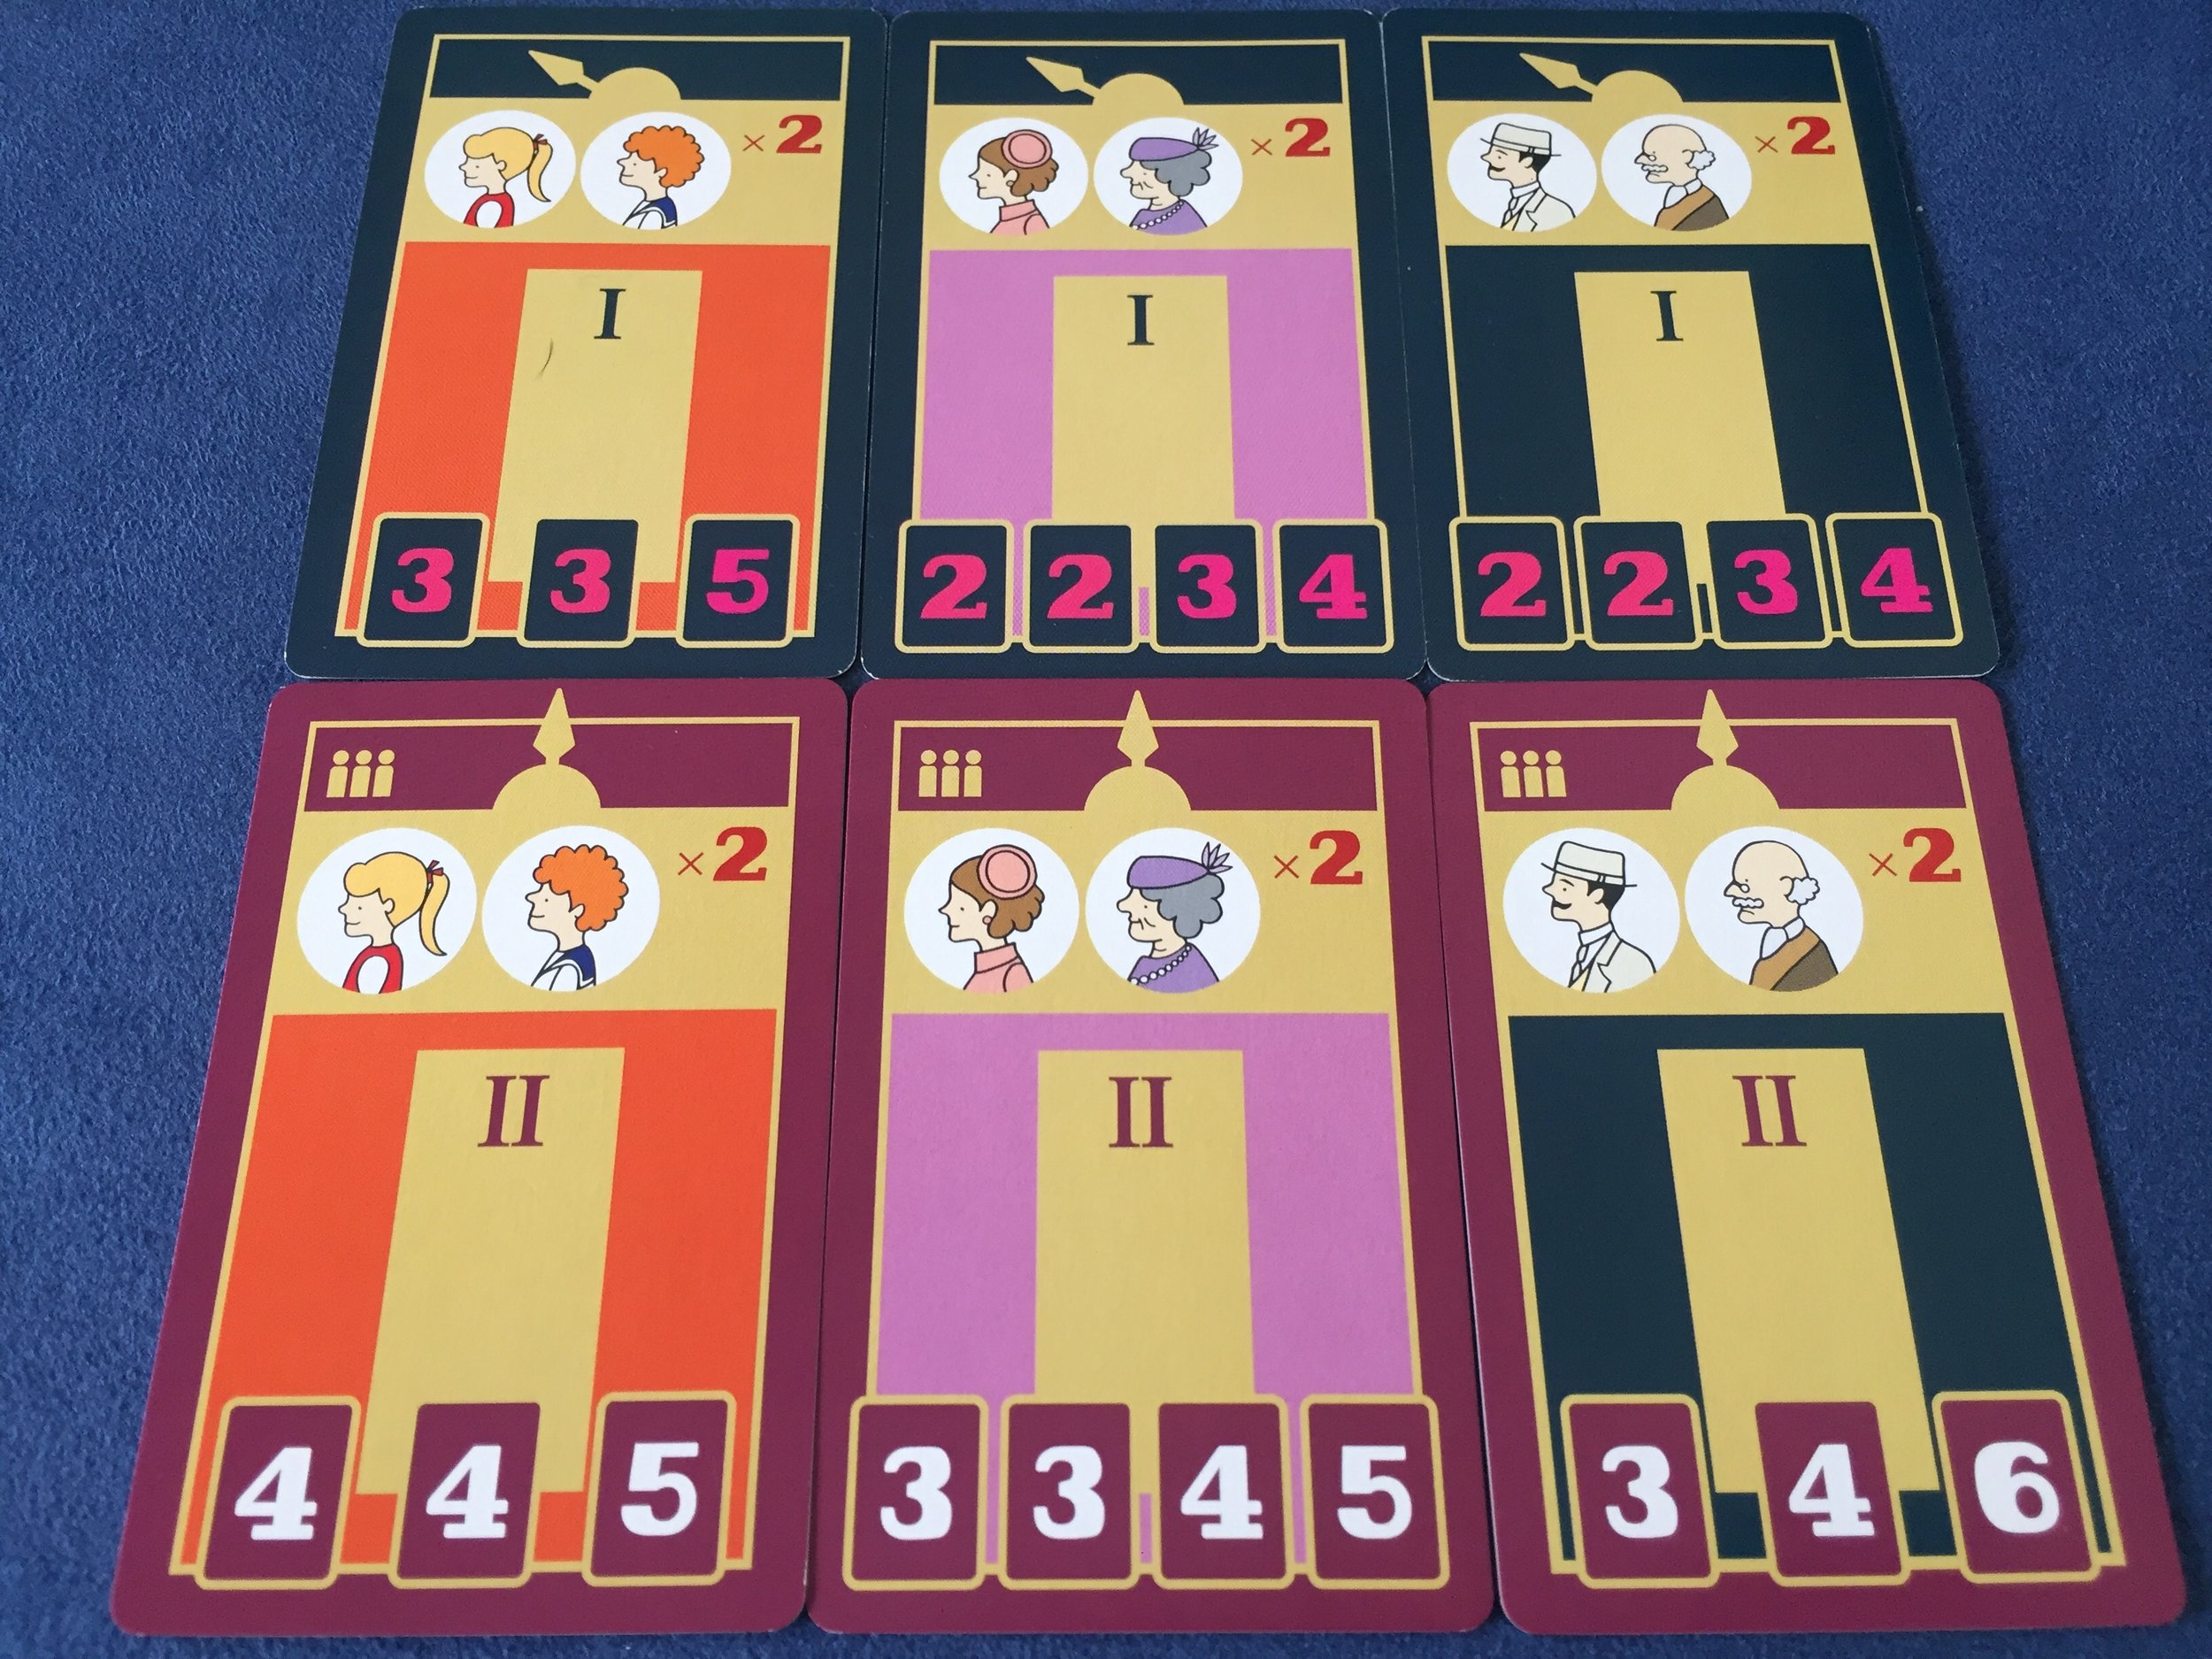 Double-sided elevator cards for the 3-player game and the 2/4-player game.